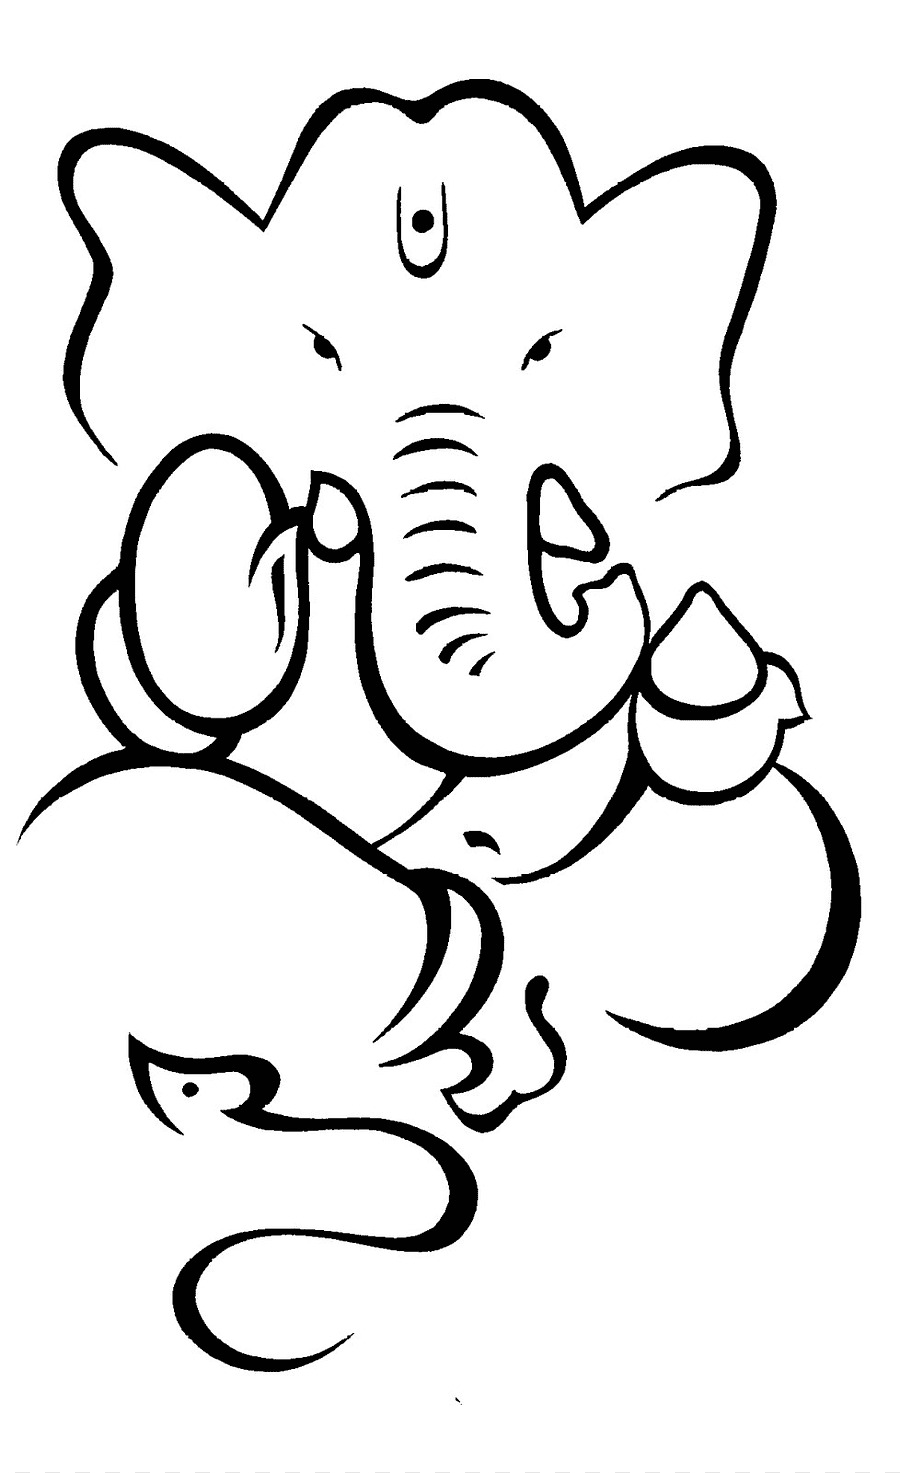 Ganesha Drawing Hinduism Deity Sketch Ganesha Outline White Mammal Png Pngegg